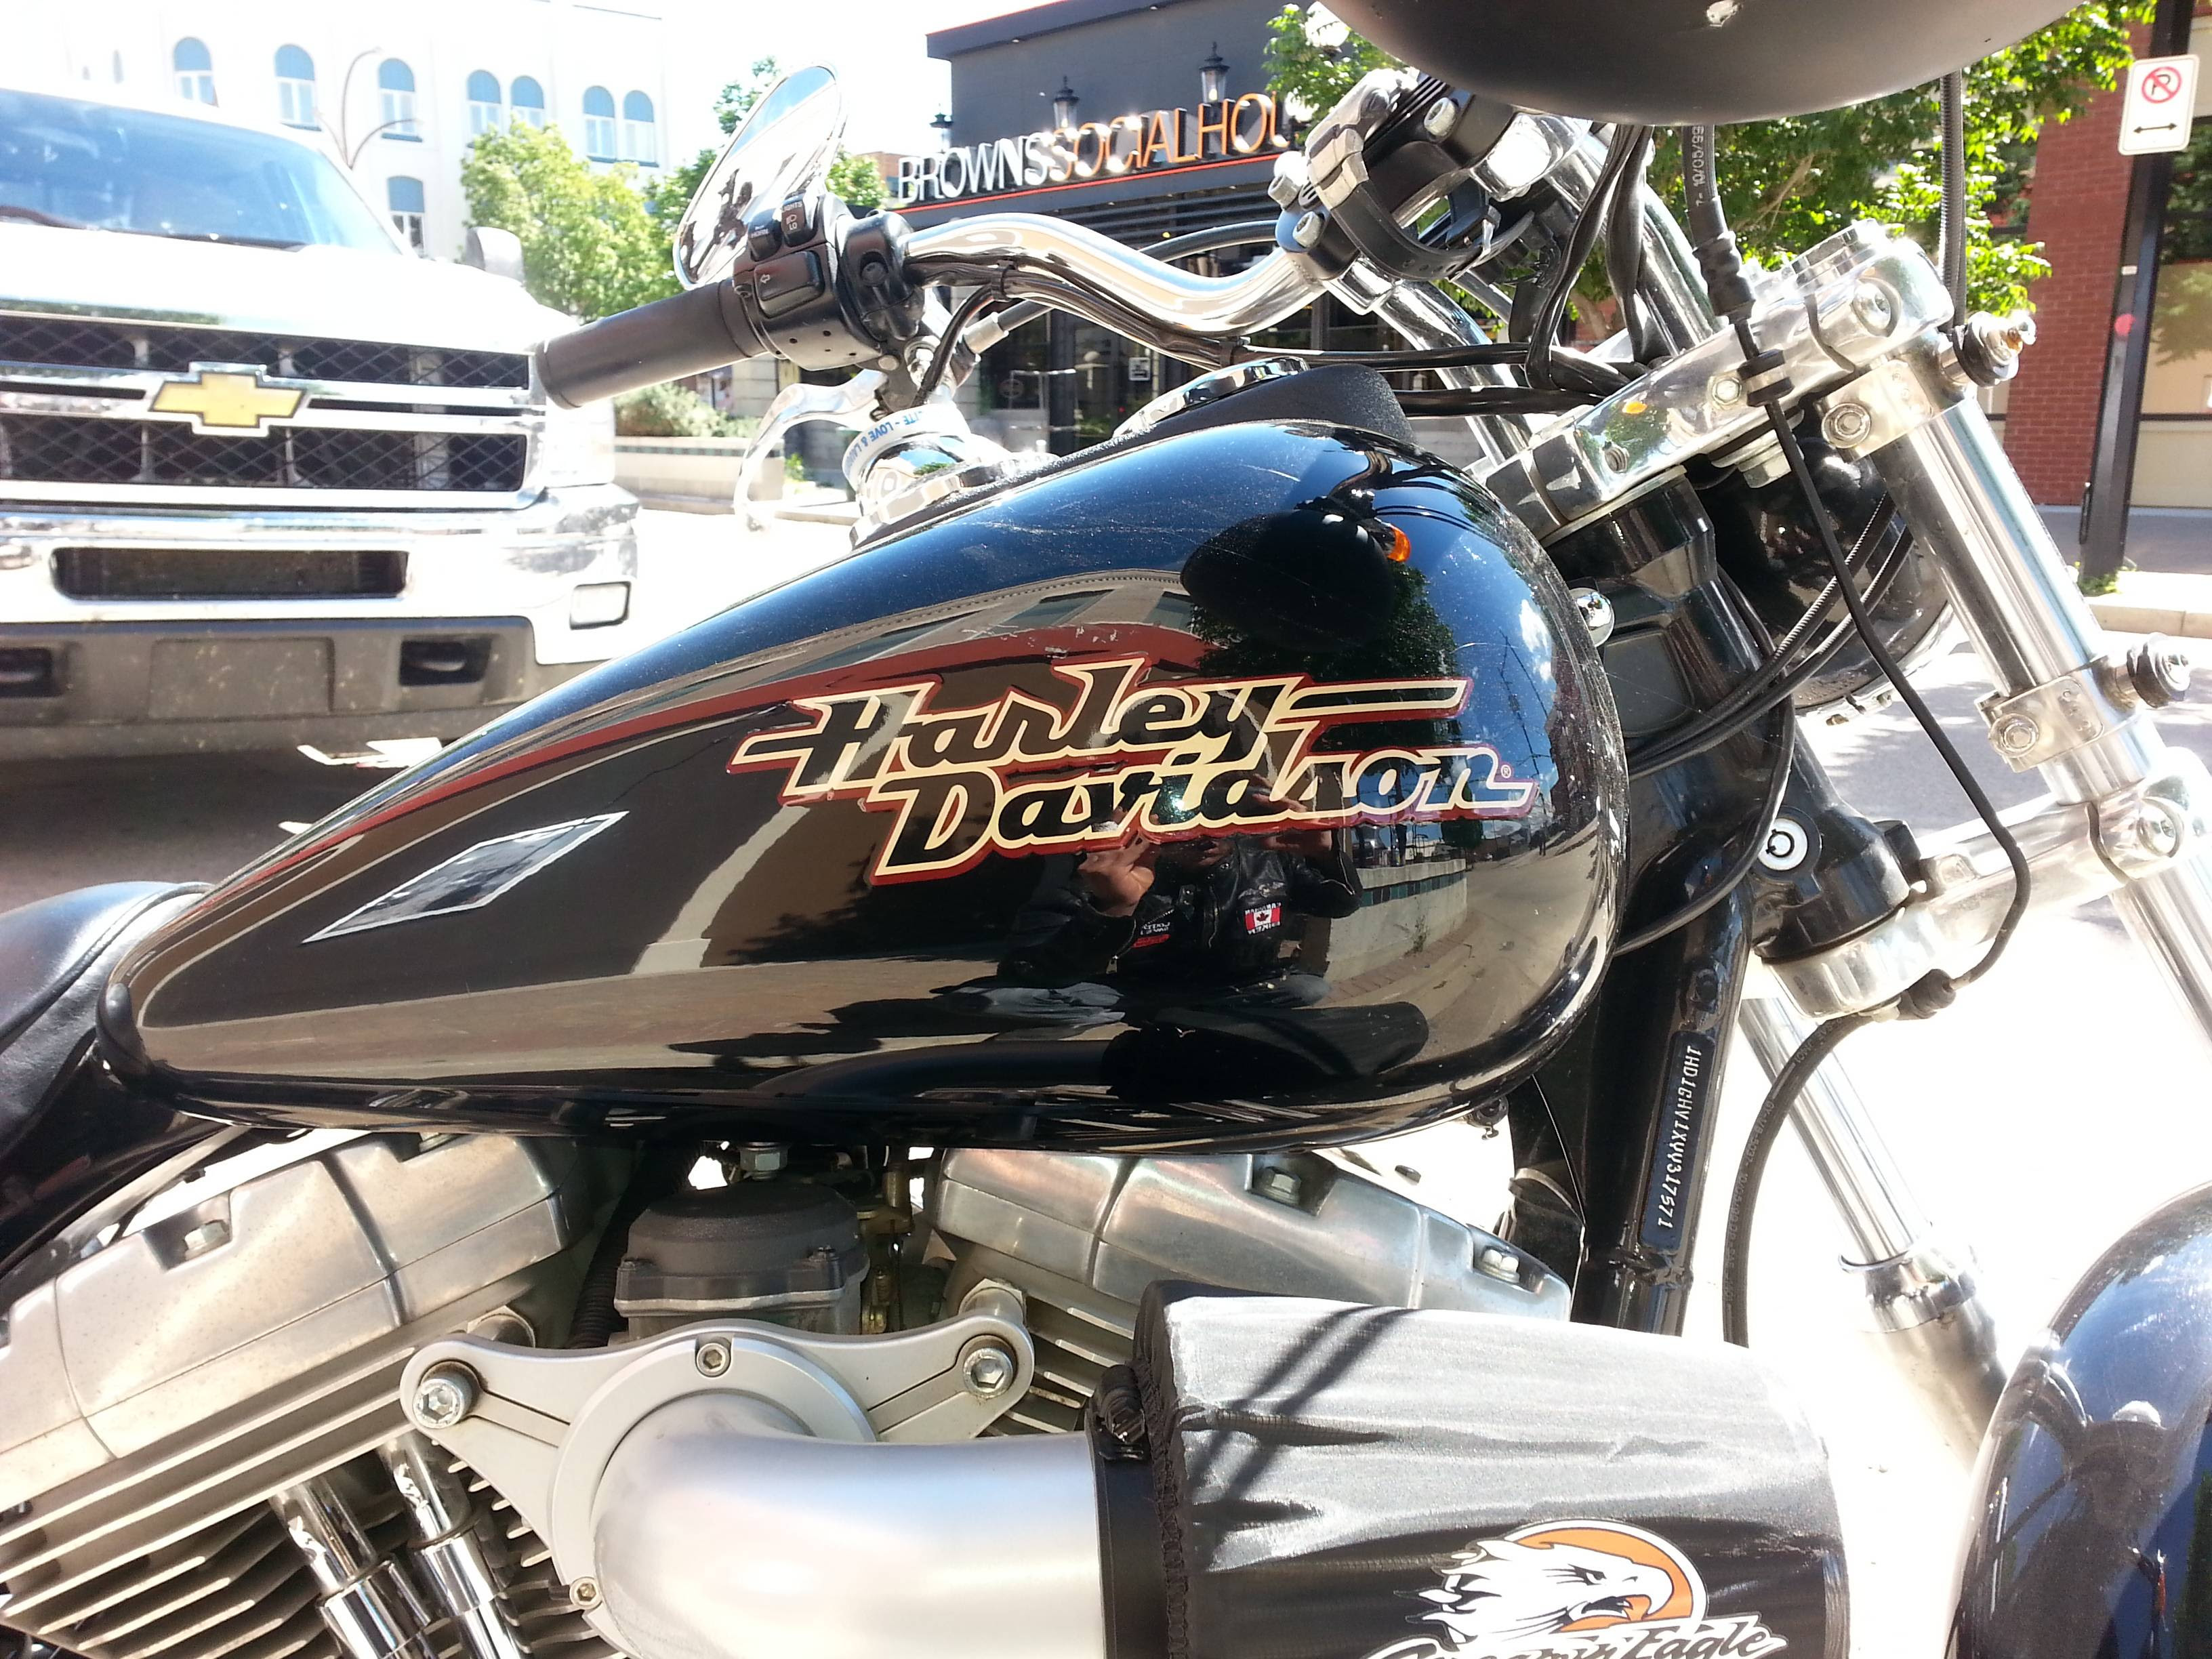 Harley Tank Stickers Why You Should Not Go To Harley Tank - Stickers for motorcycles harley davidsonsharley davidson tank decals stickers graphics johannesburg